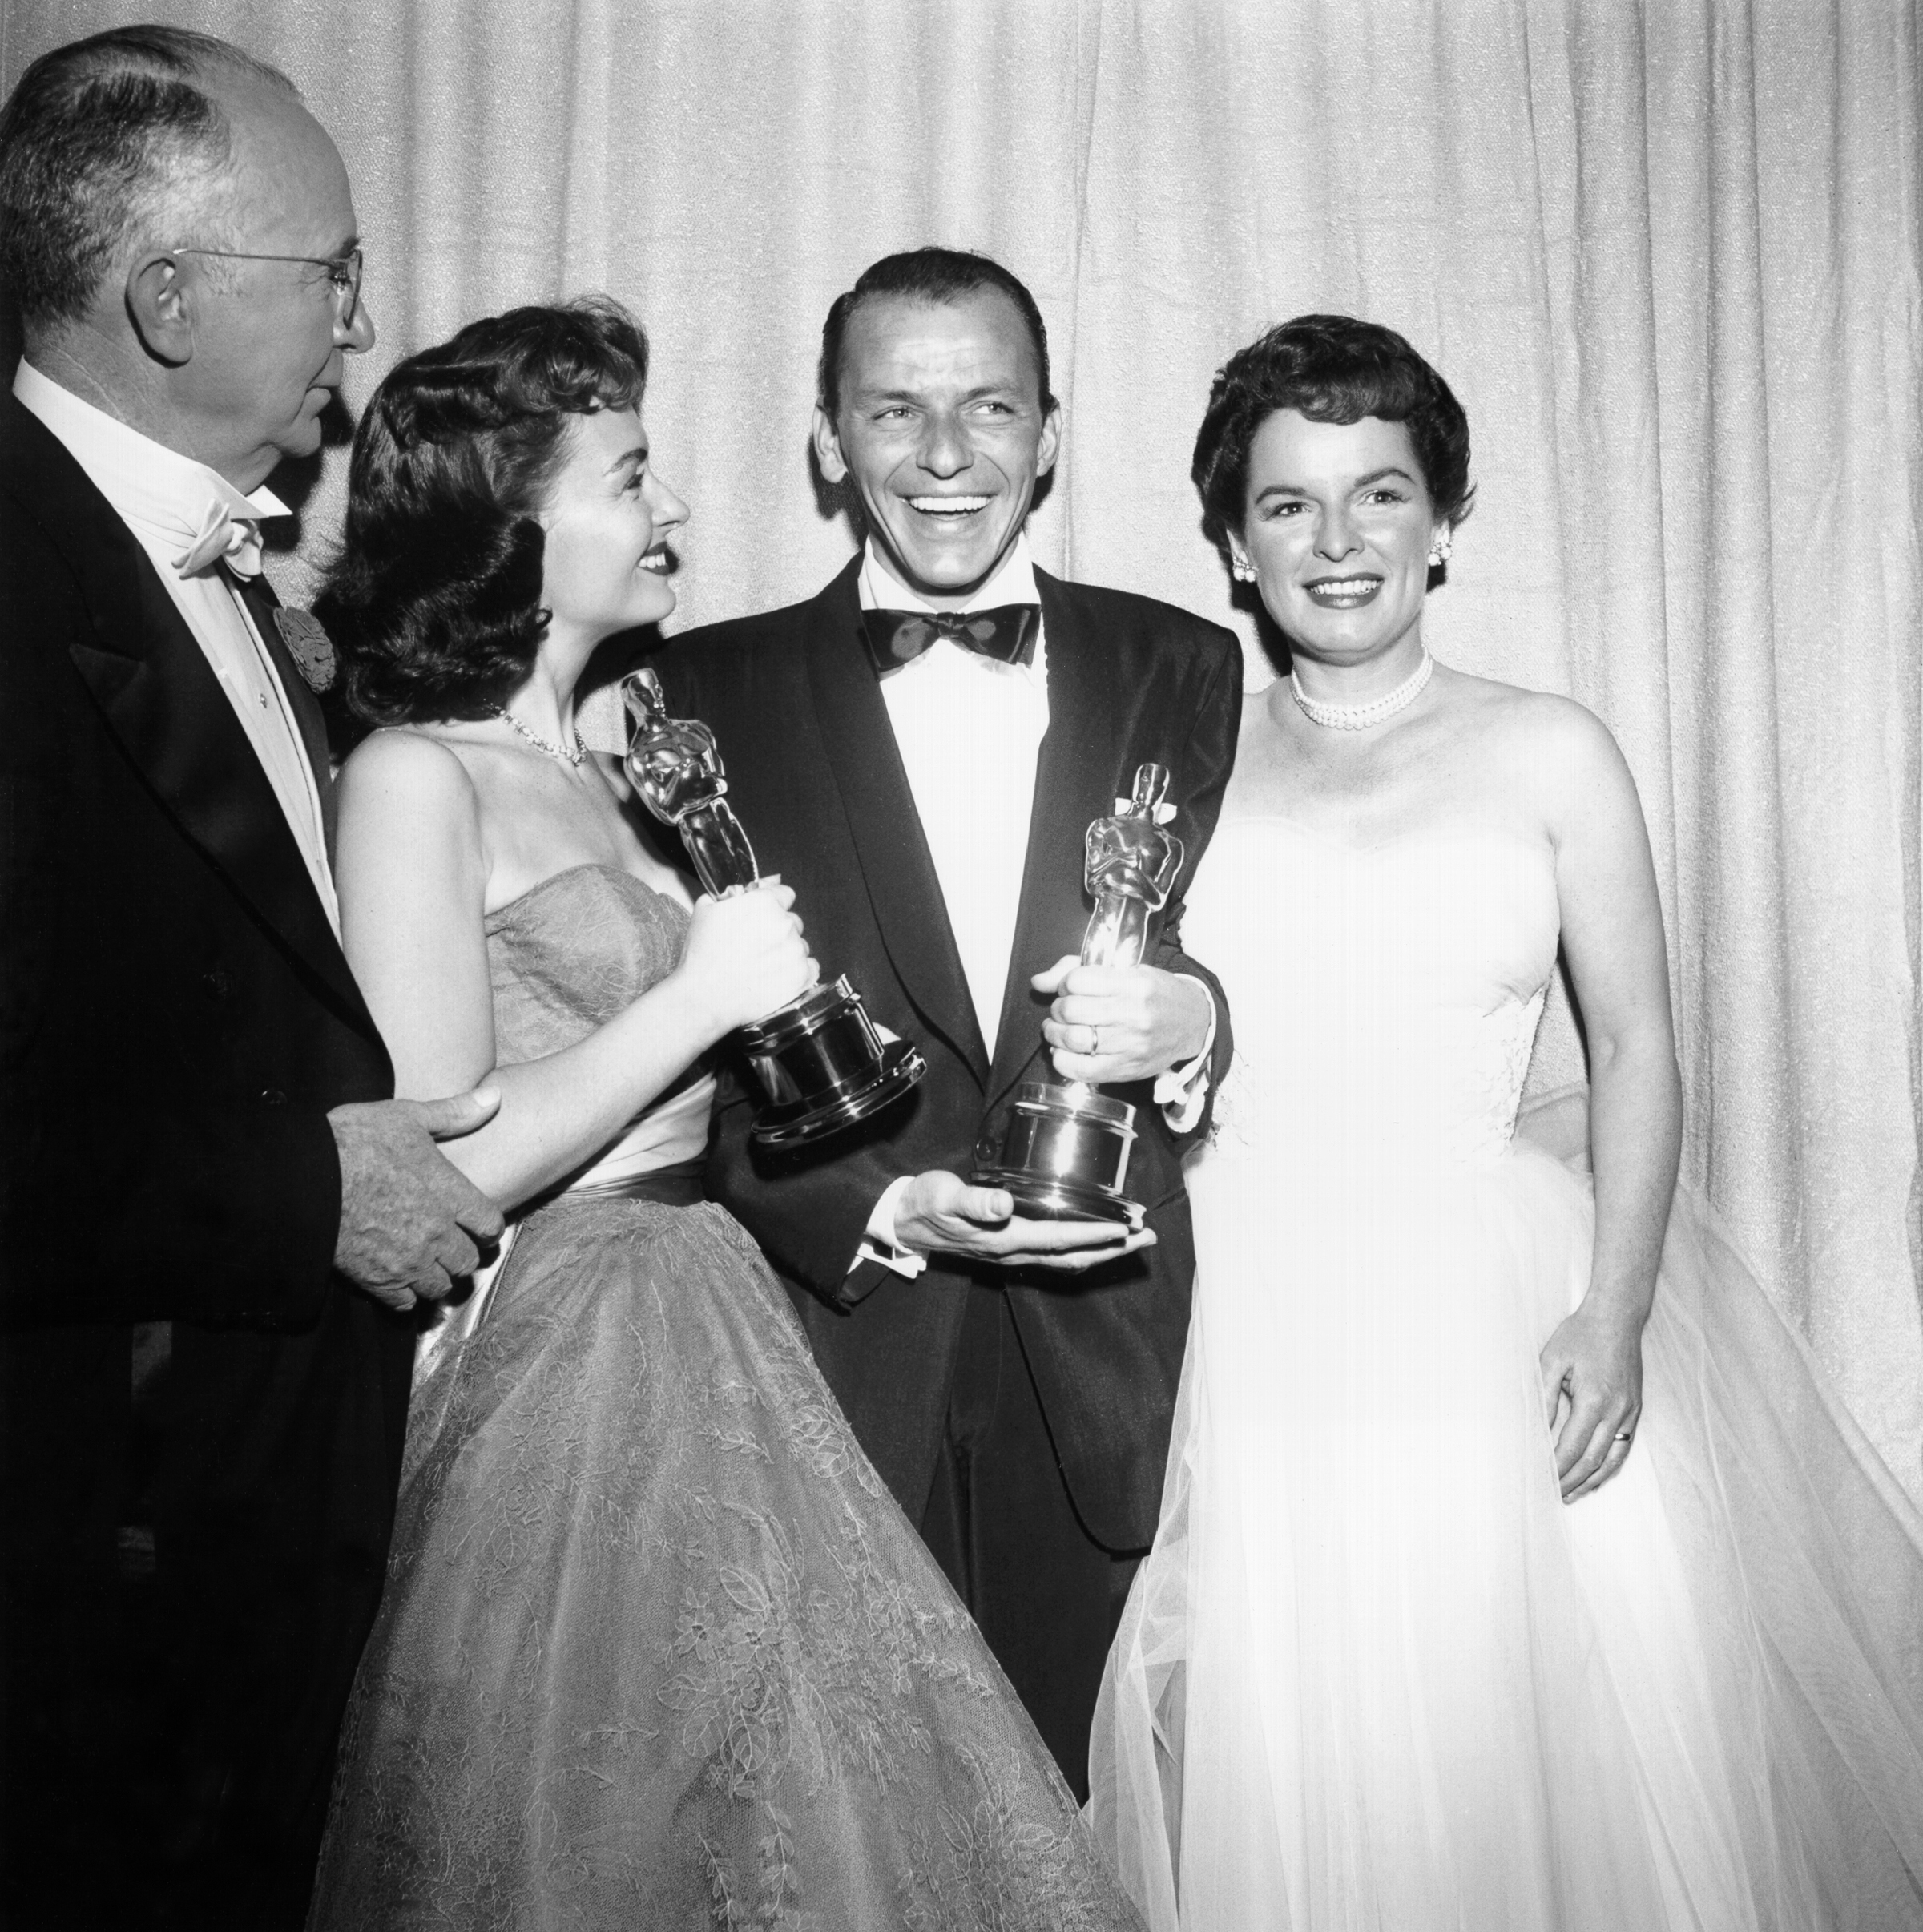 Movie stars Donna Reed and Frank Sinatra hold their Oscars which they won for Best Supporting Actress and Best Supporting Actor respectively in the movie  From Here To Eternity  as they pose with presenters Walter Brennan and Mercedes McCambridge backstage at the RKO Pantages Theatre on March 25, 1954 in Los Angeles, California.